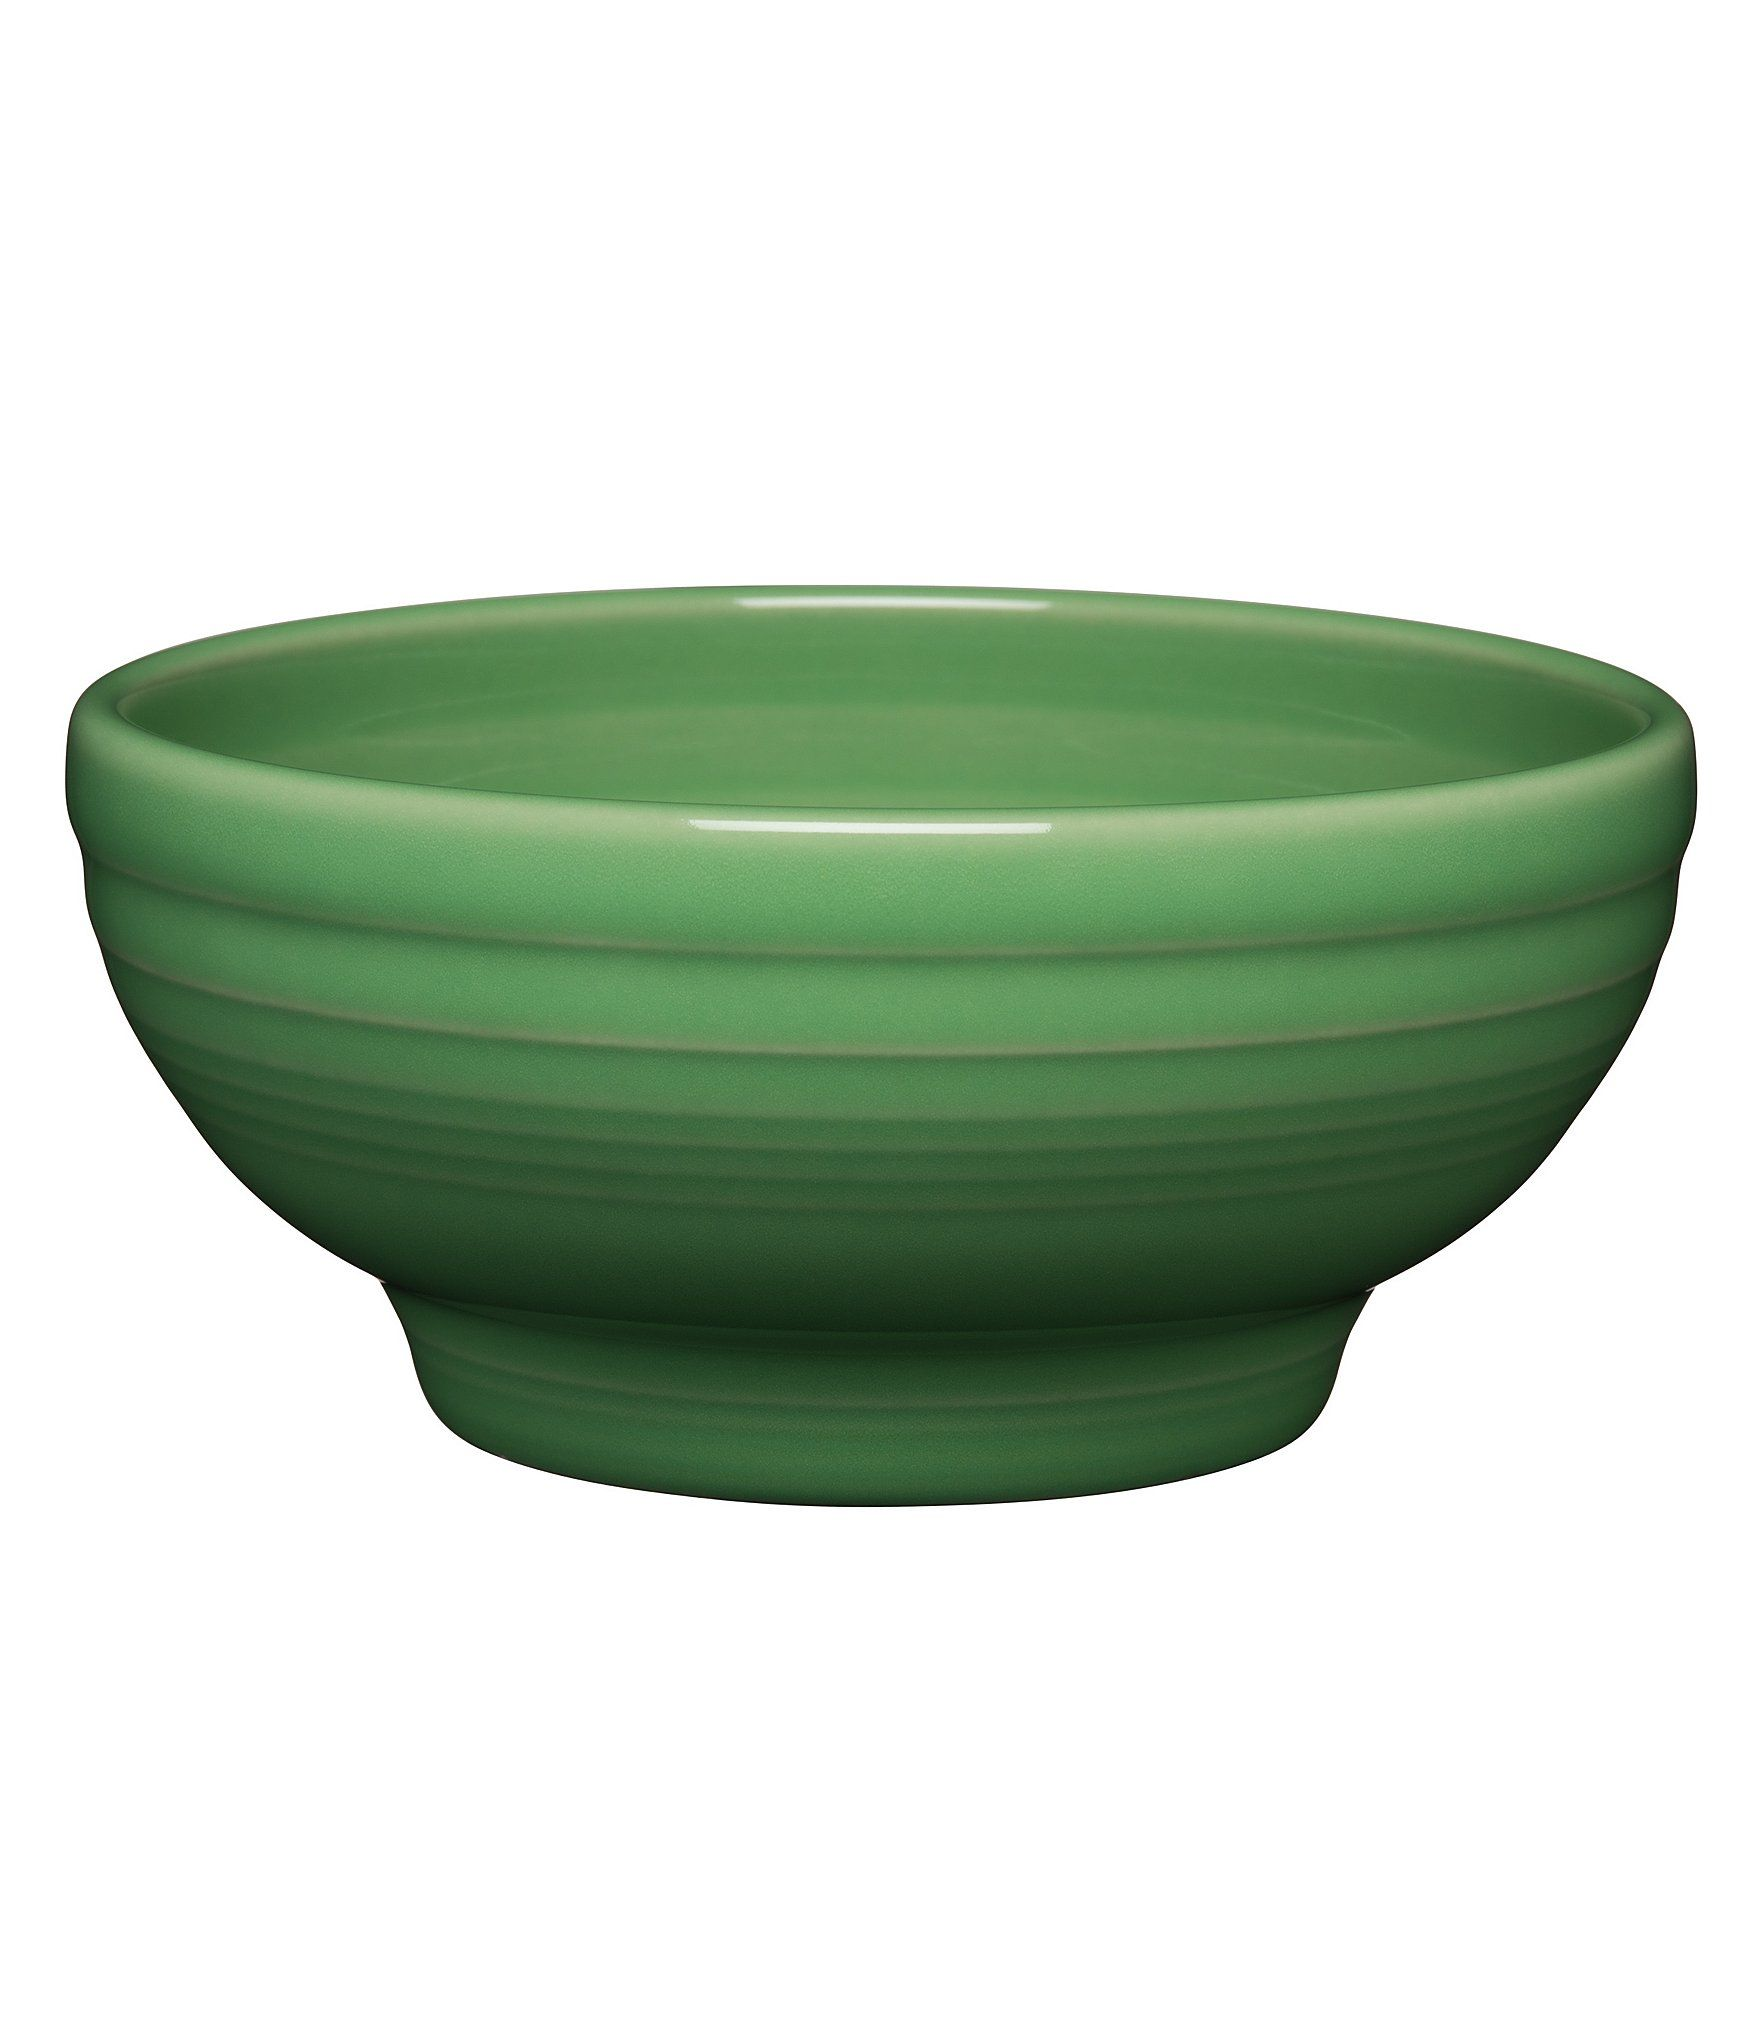 Fiesta Small Footed Bowl - Meadow